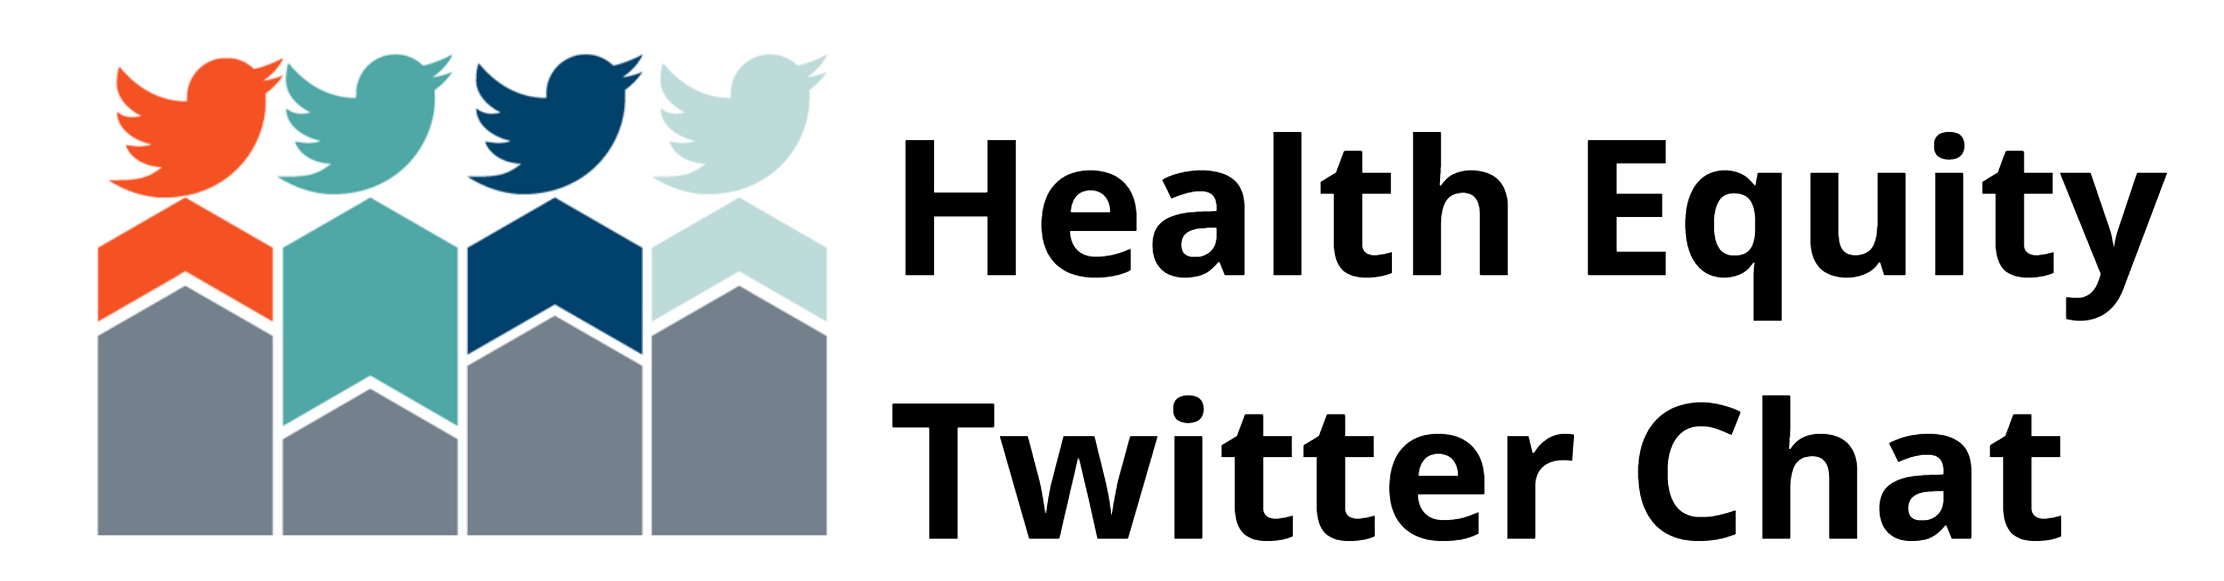 MHA Keystone Center to Host Health Equity Twitter Chat